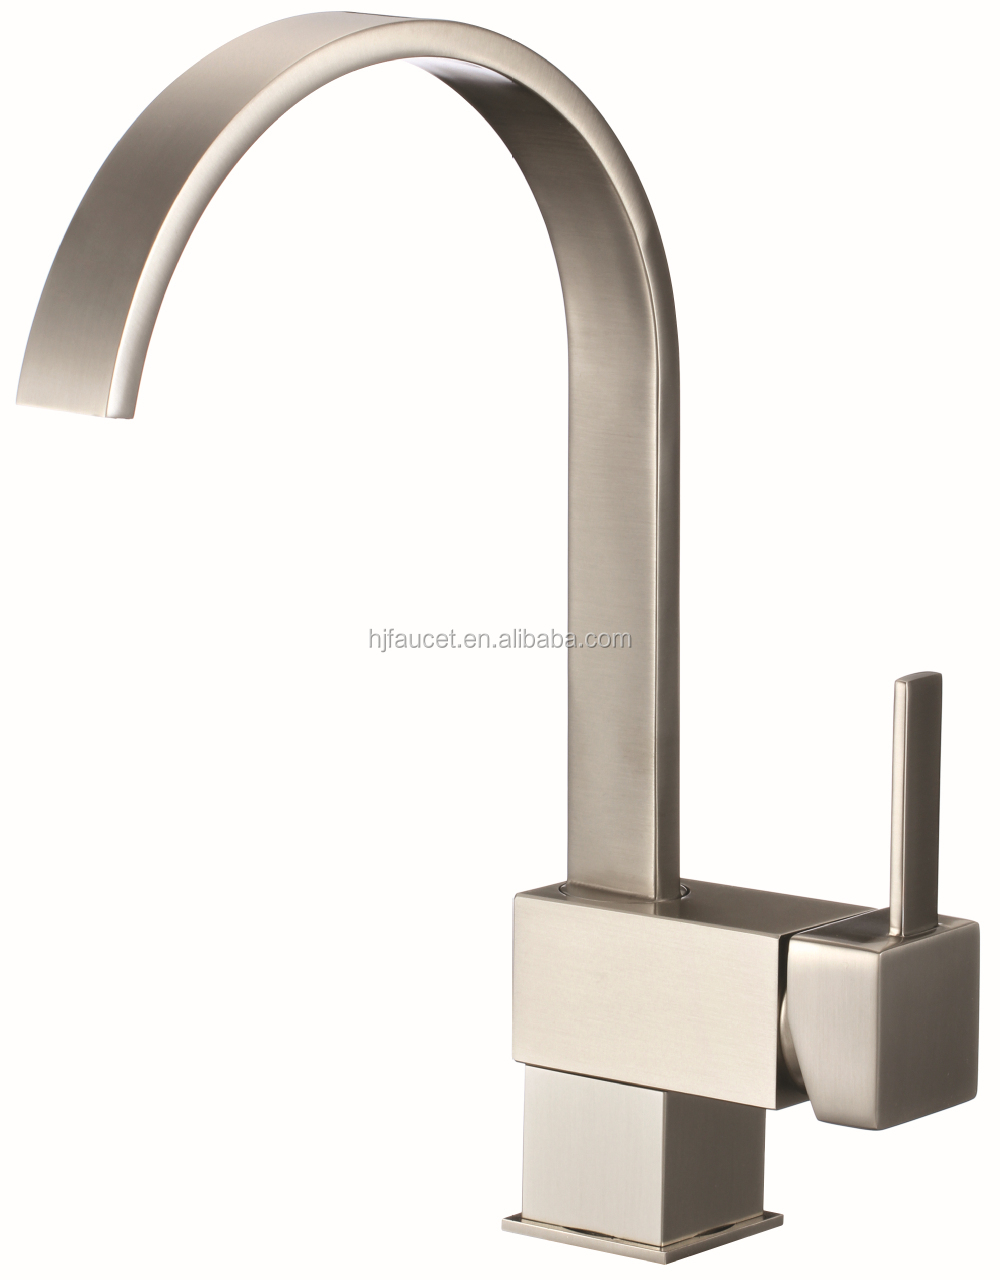 upc 61-9 nsf waterfall brushed nickel kitchen faucet(82H08-BN)